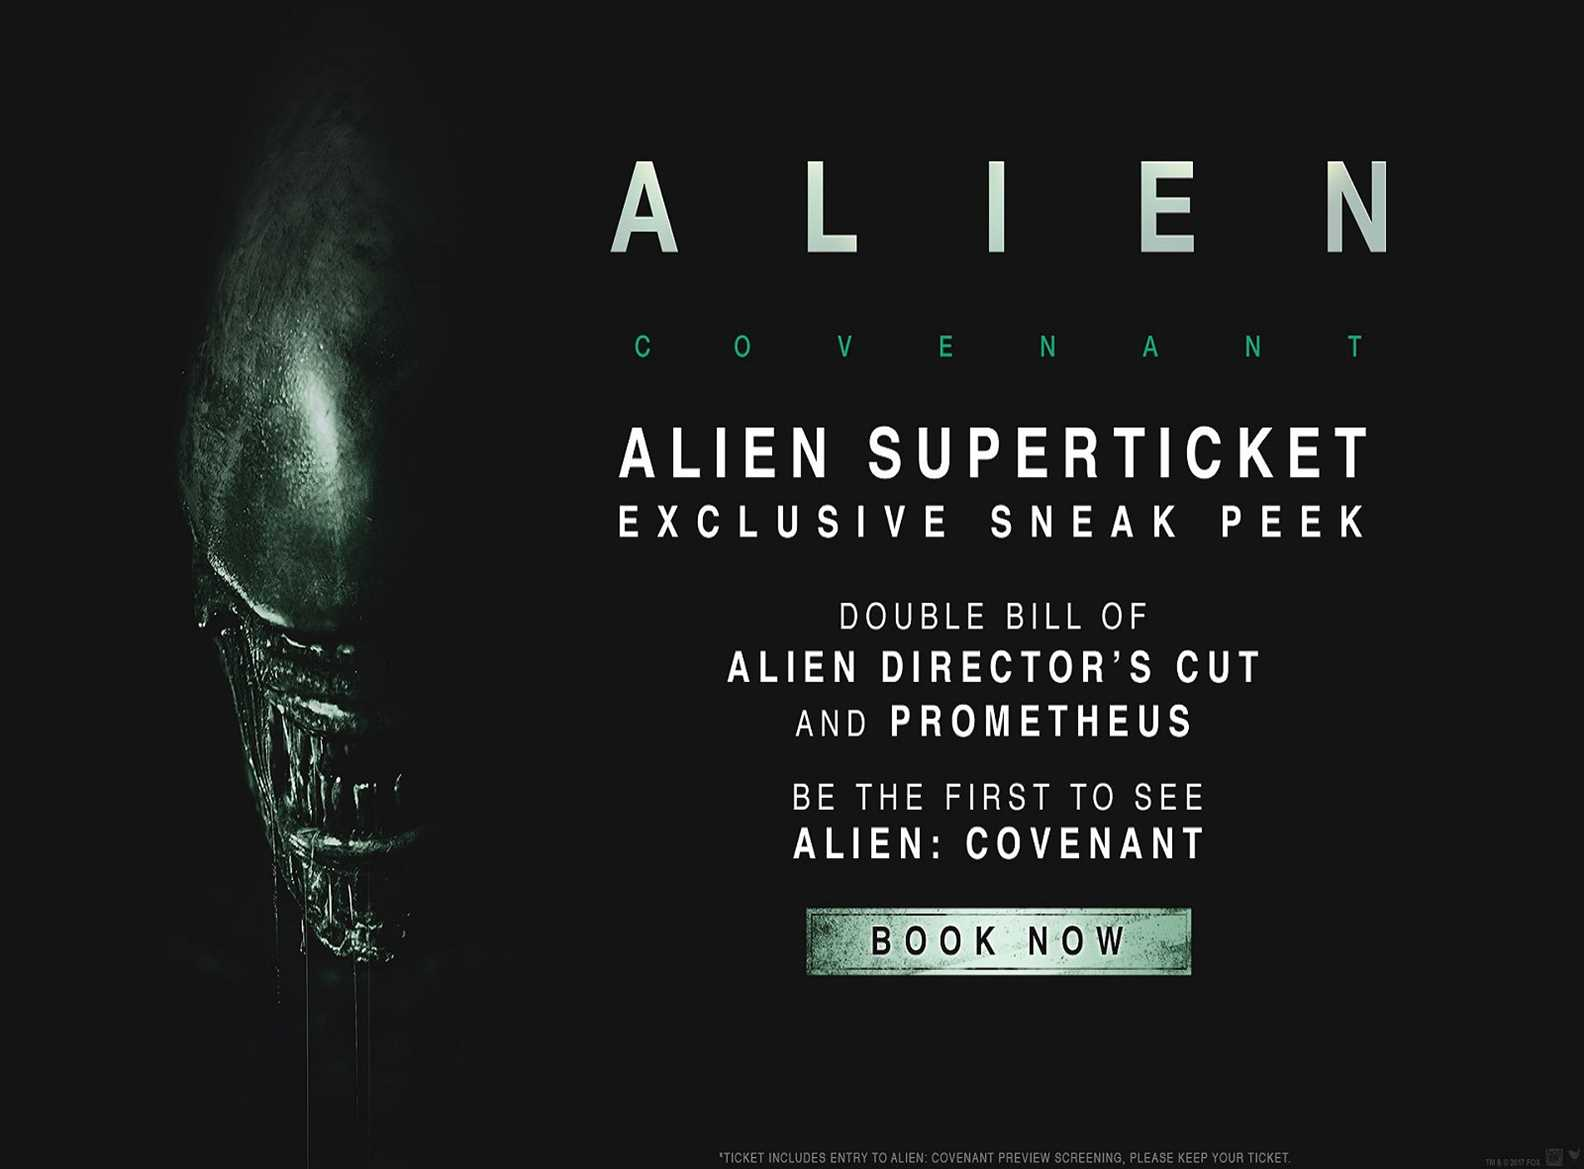 Alien Super Ticket